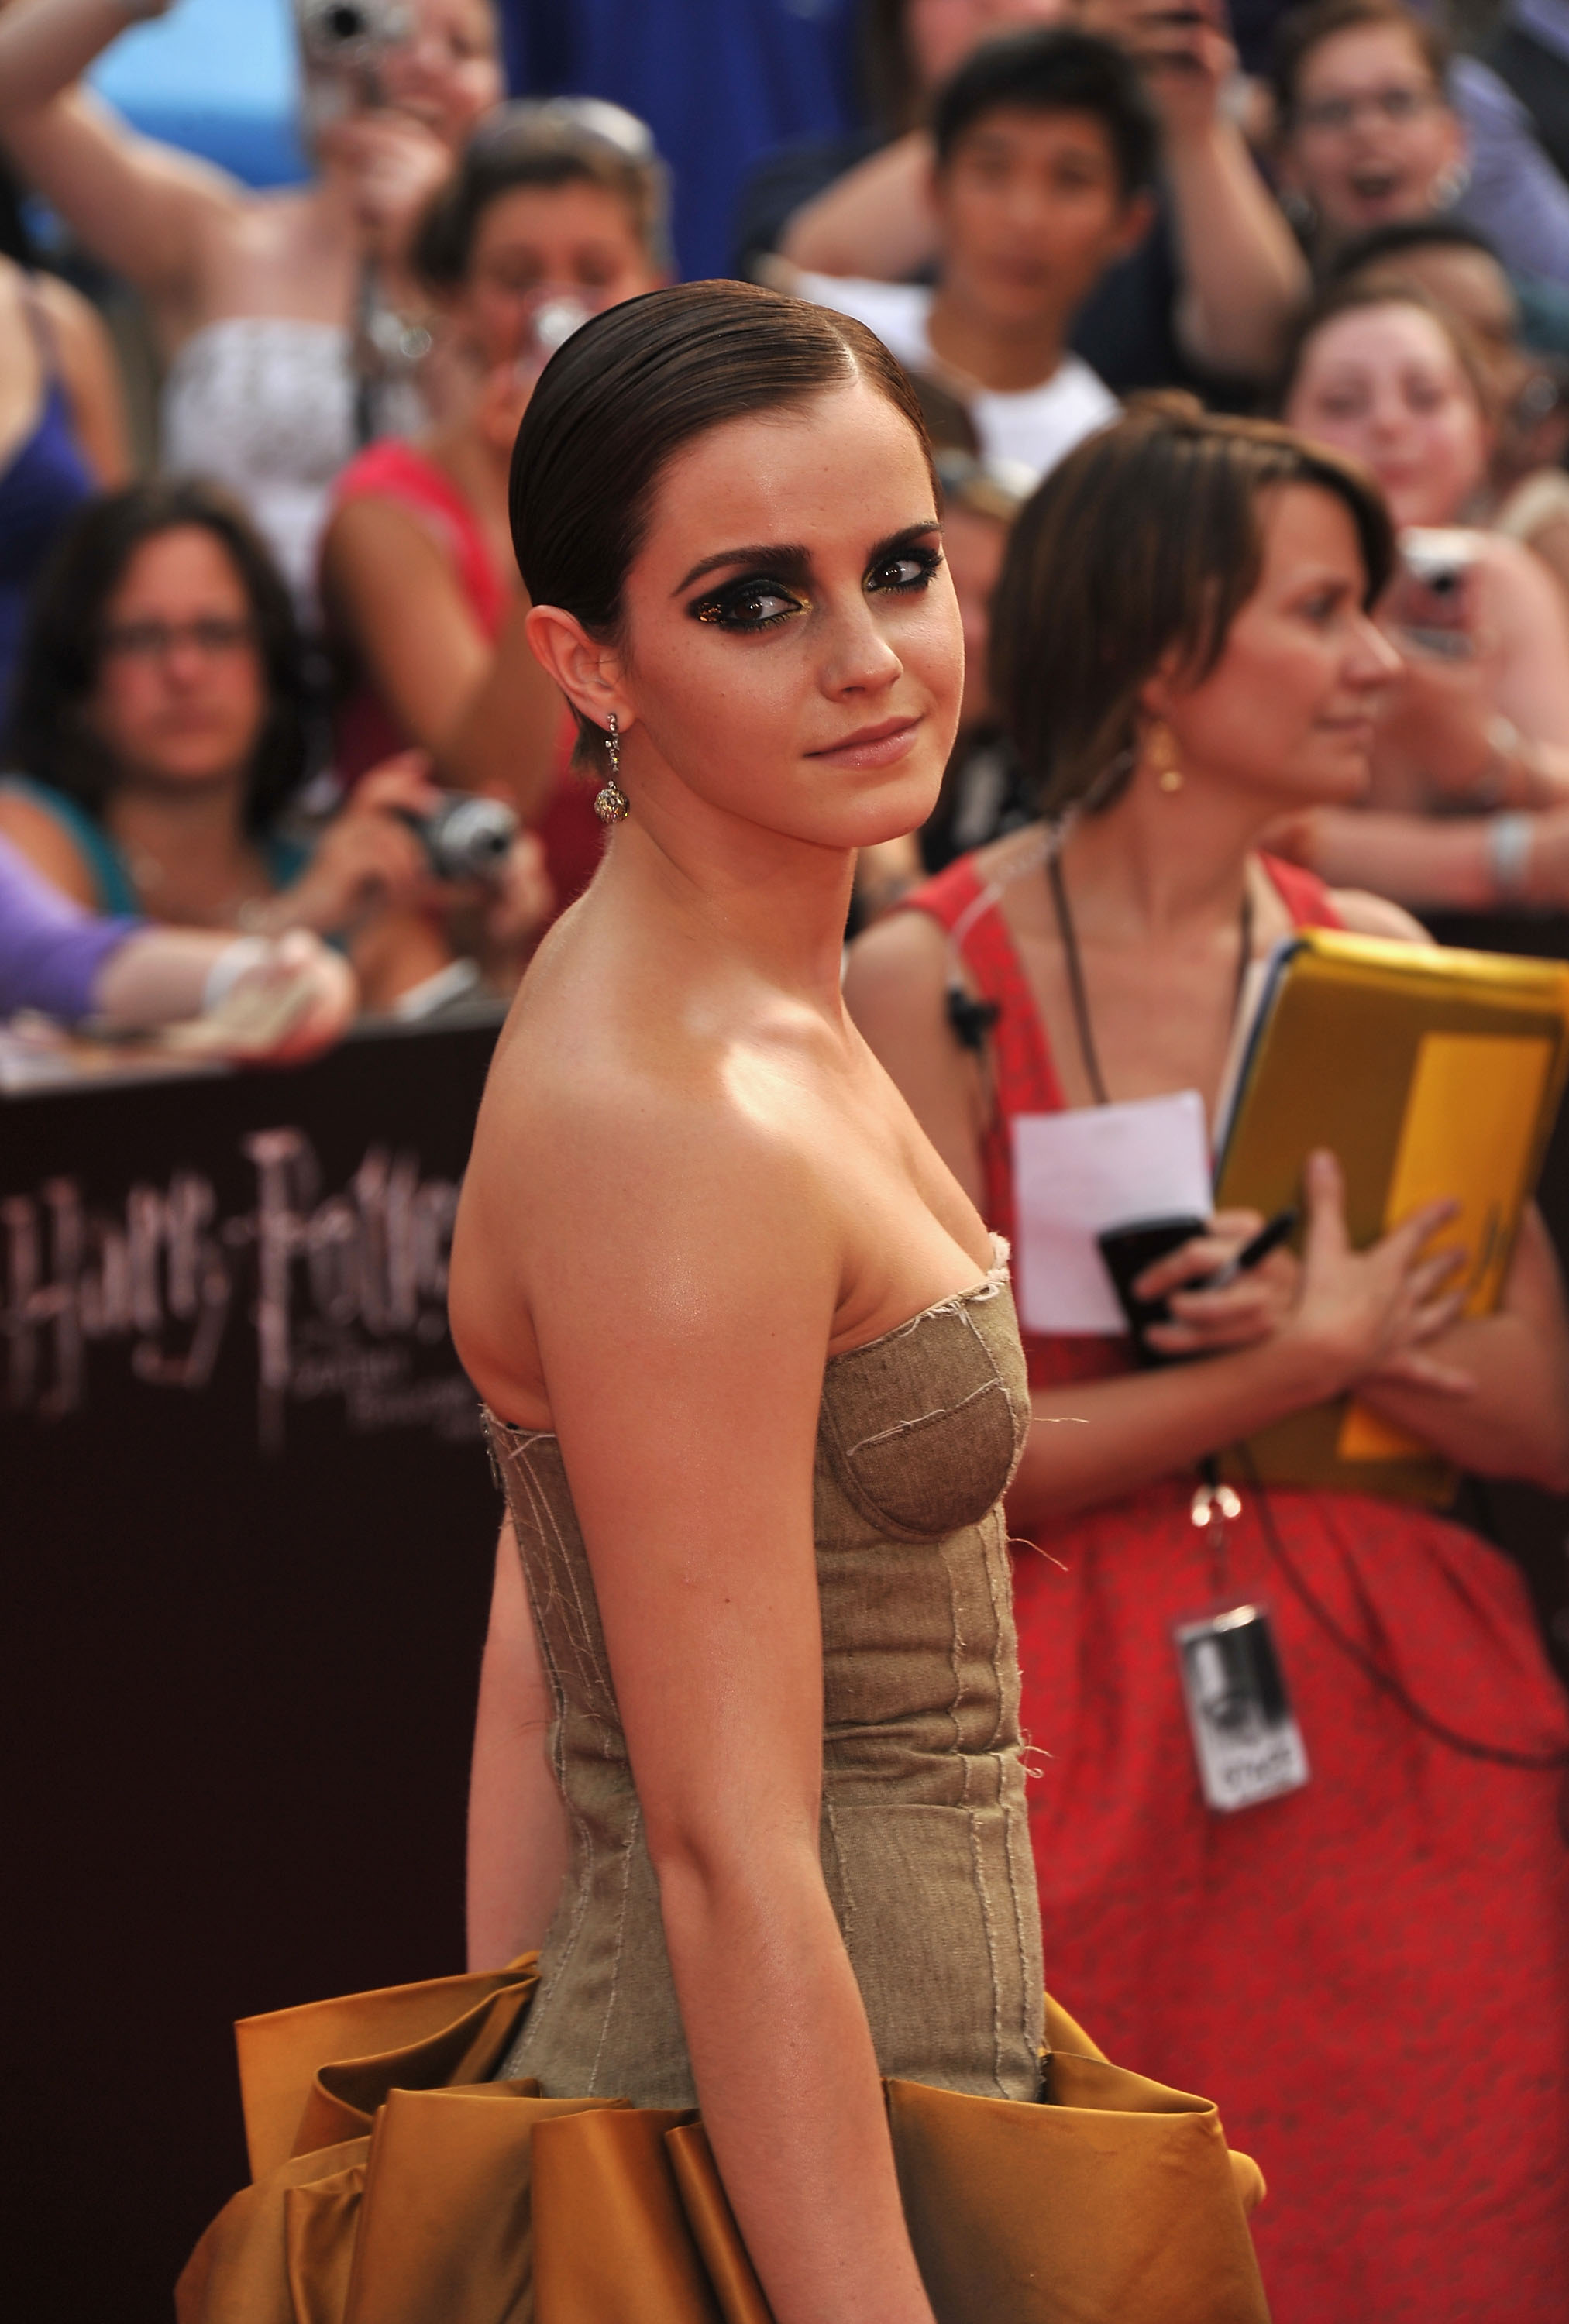 Emma Watson Harry Potter And The Deathly Hallows Part 2 Premiere Dress Pictures of Emm...